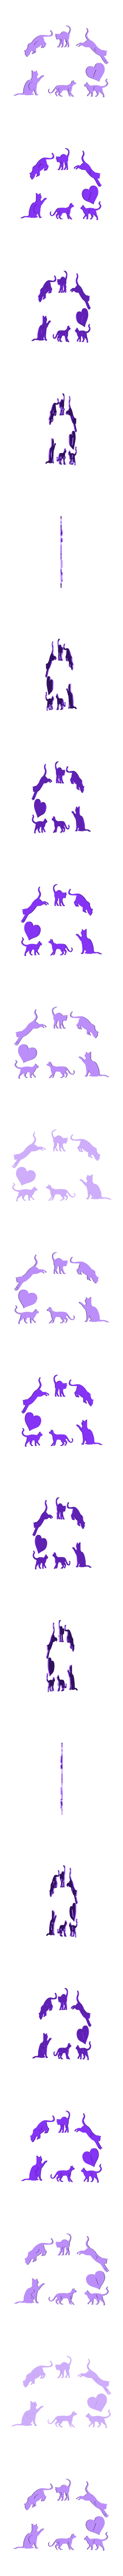 """Cats.stl Download free STL file Valentine photo fame """"Six tails love"""" • 3D printing template, Opossums"""